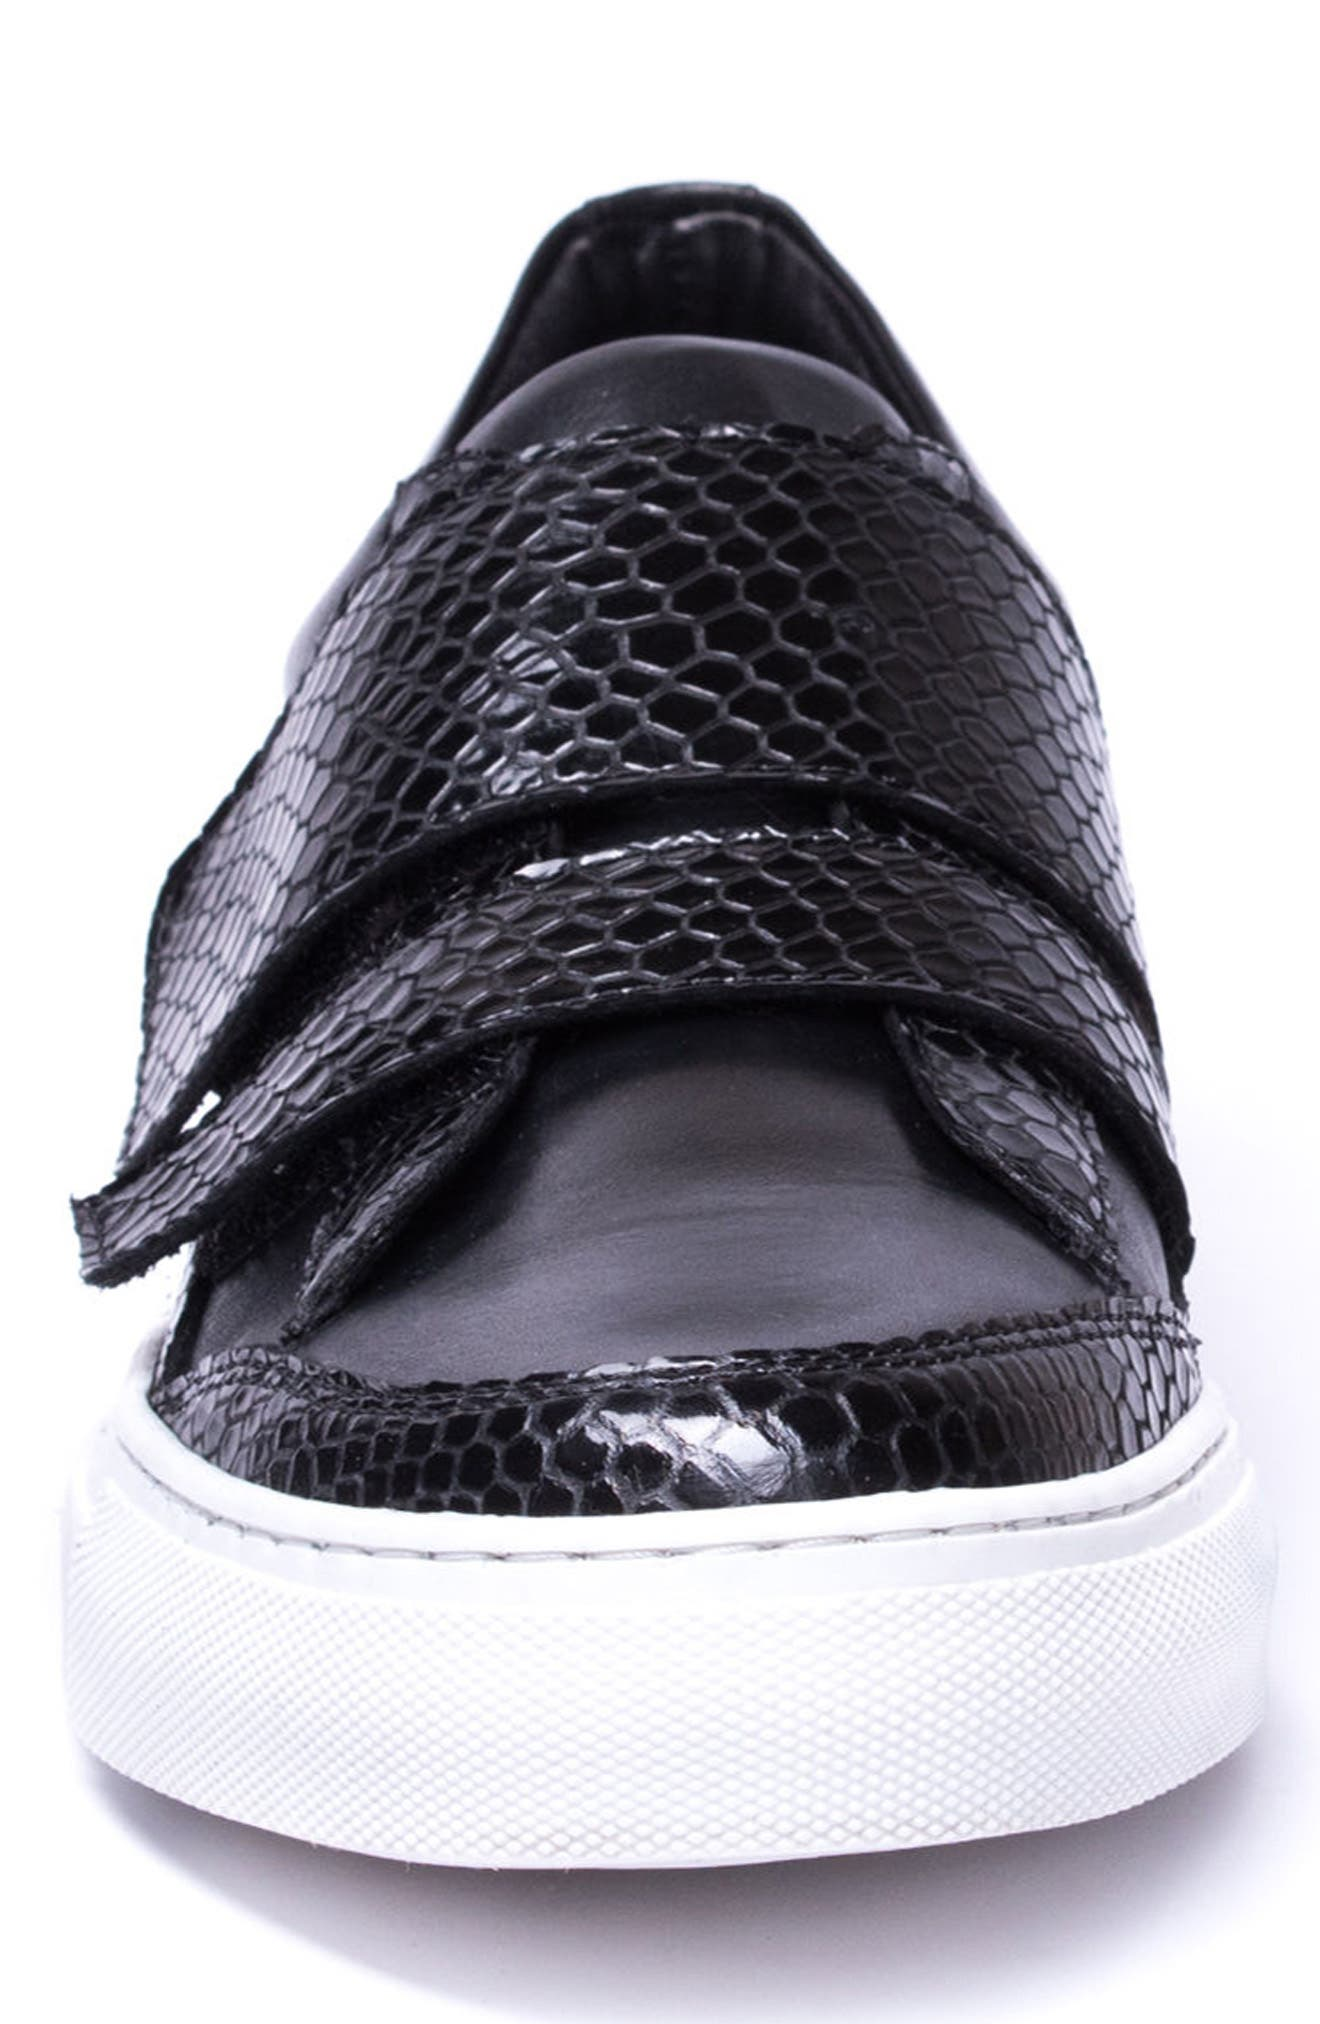 Luke Double Strap Sneaker,                             Alternate thumbnail 4, color,                             BLACK LEATHER